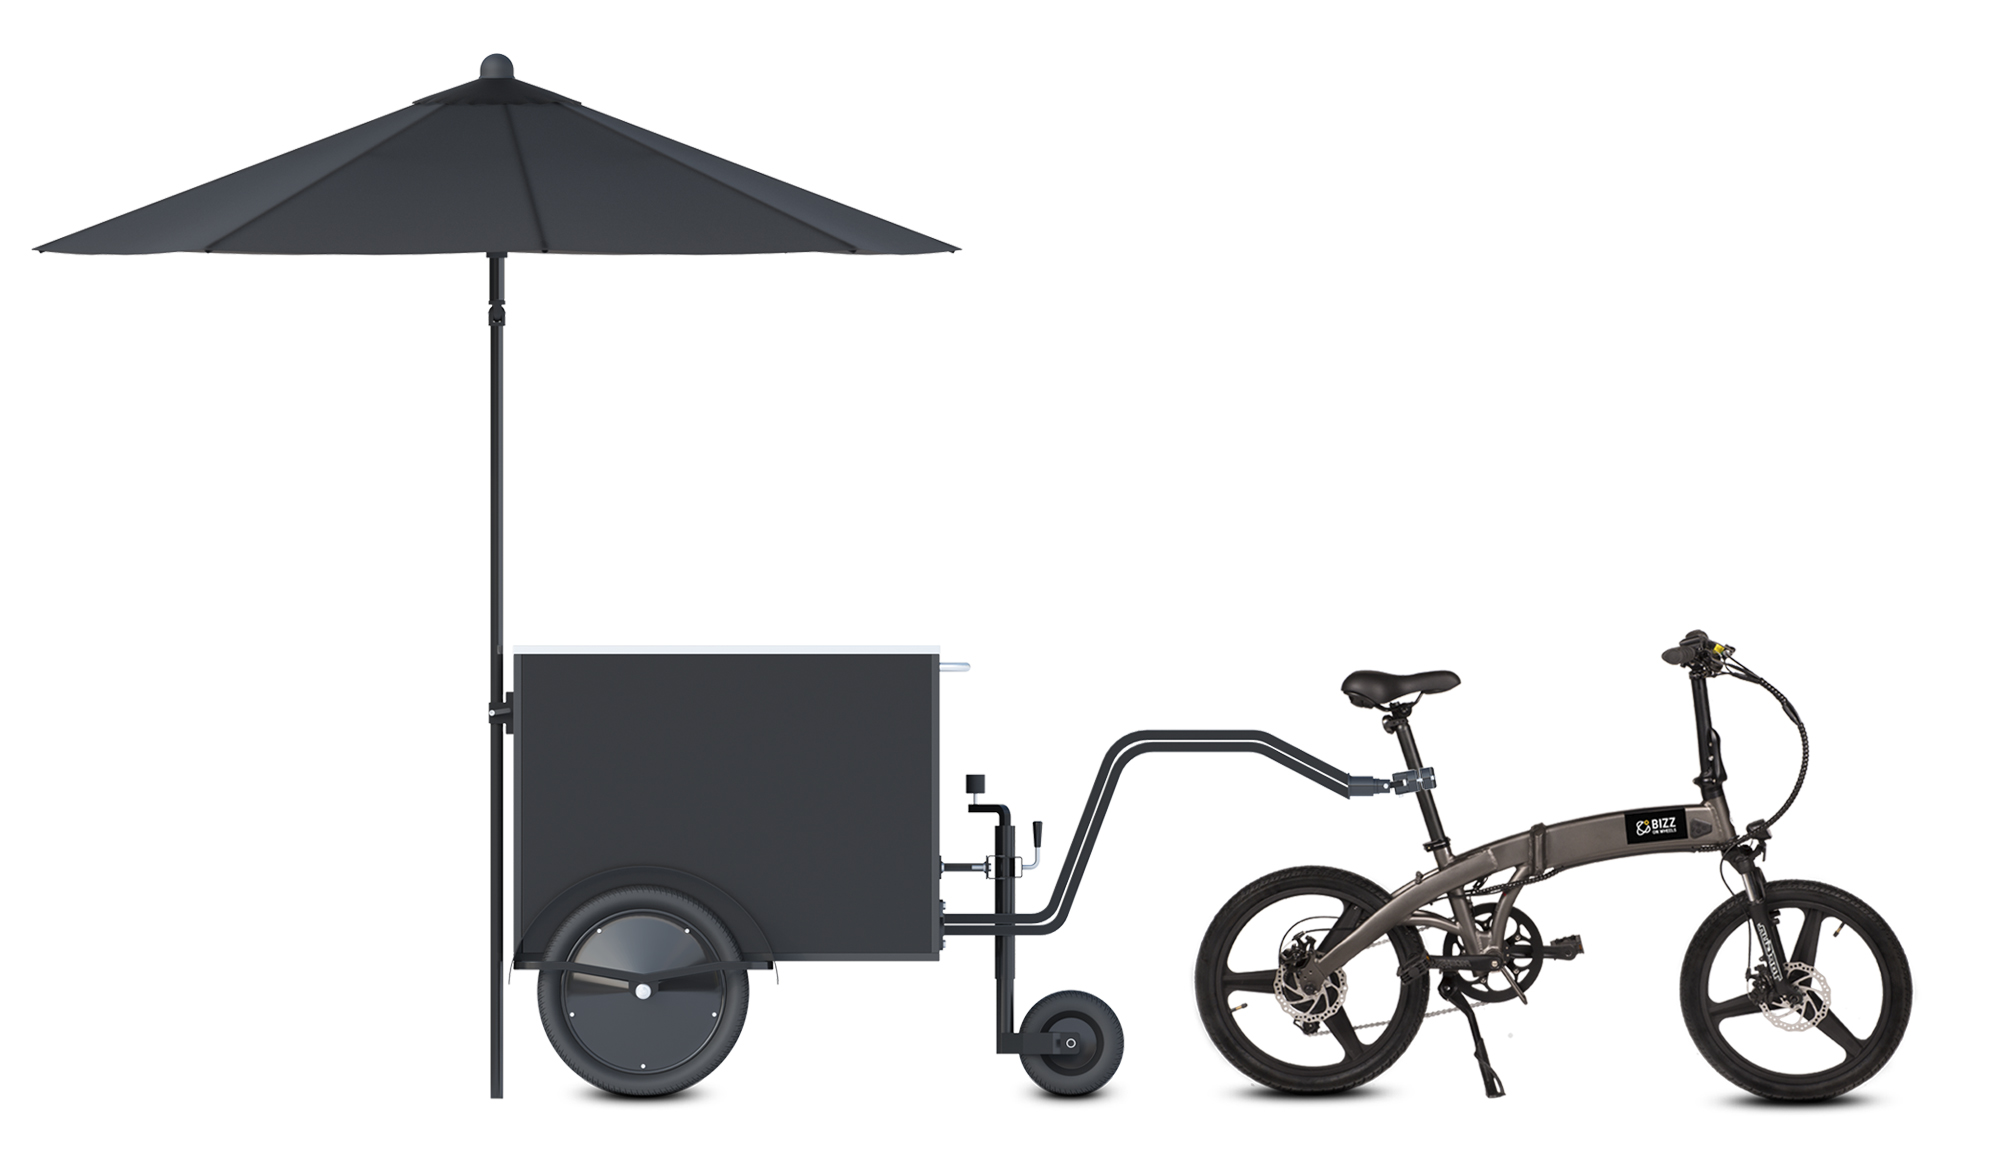 Small food vending cart towable by bicycle